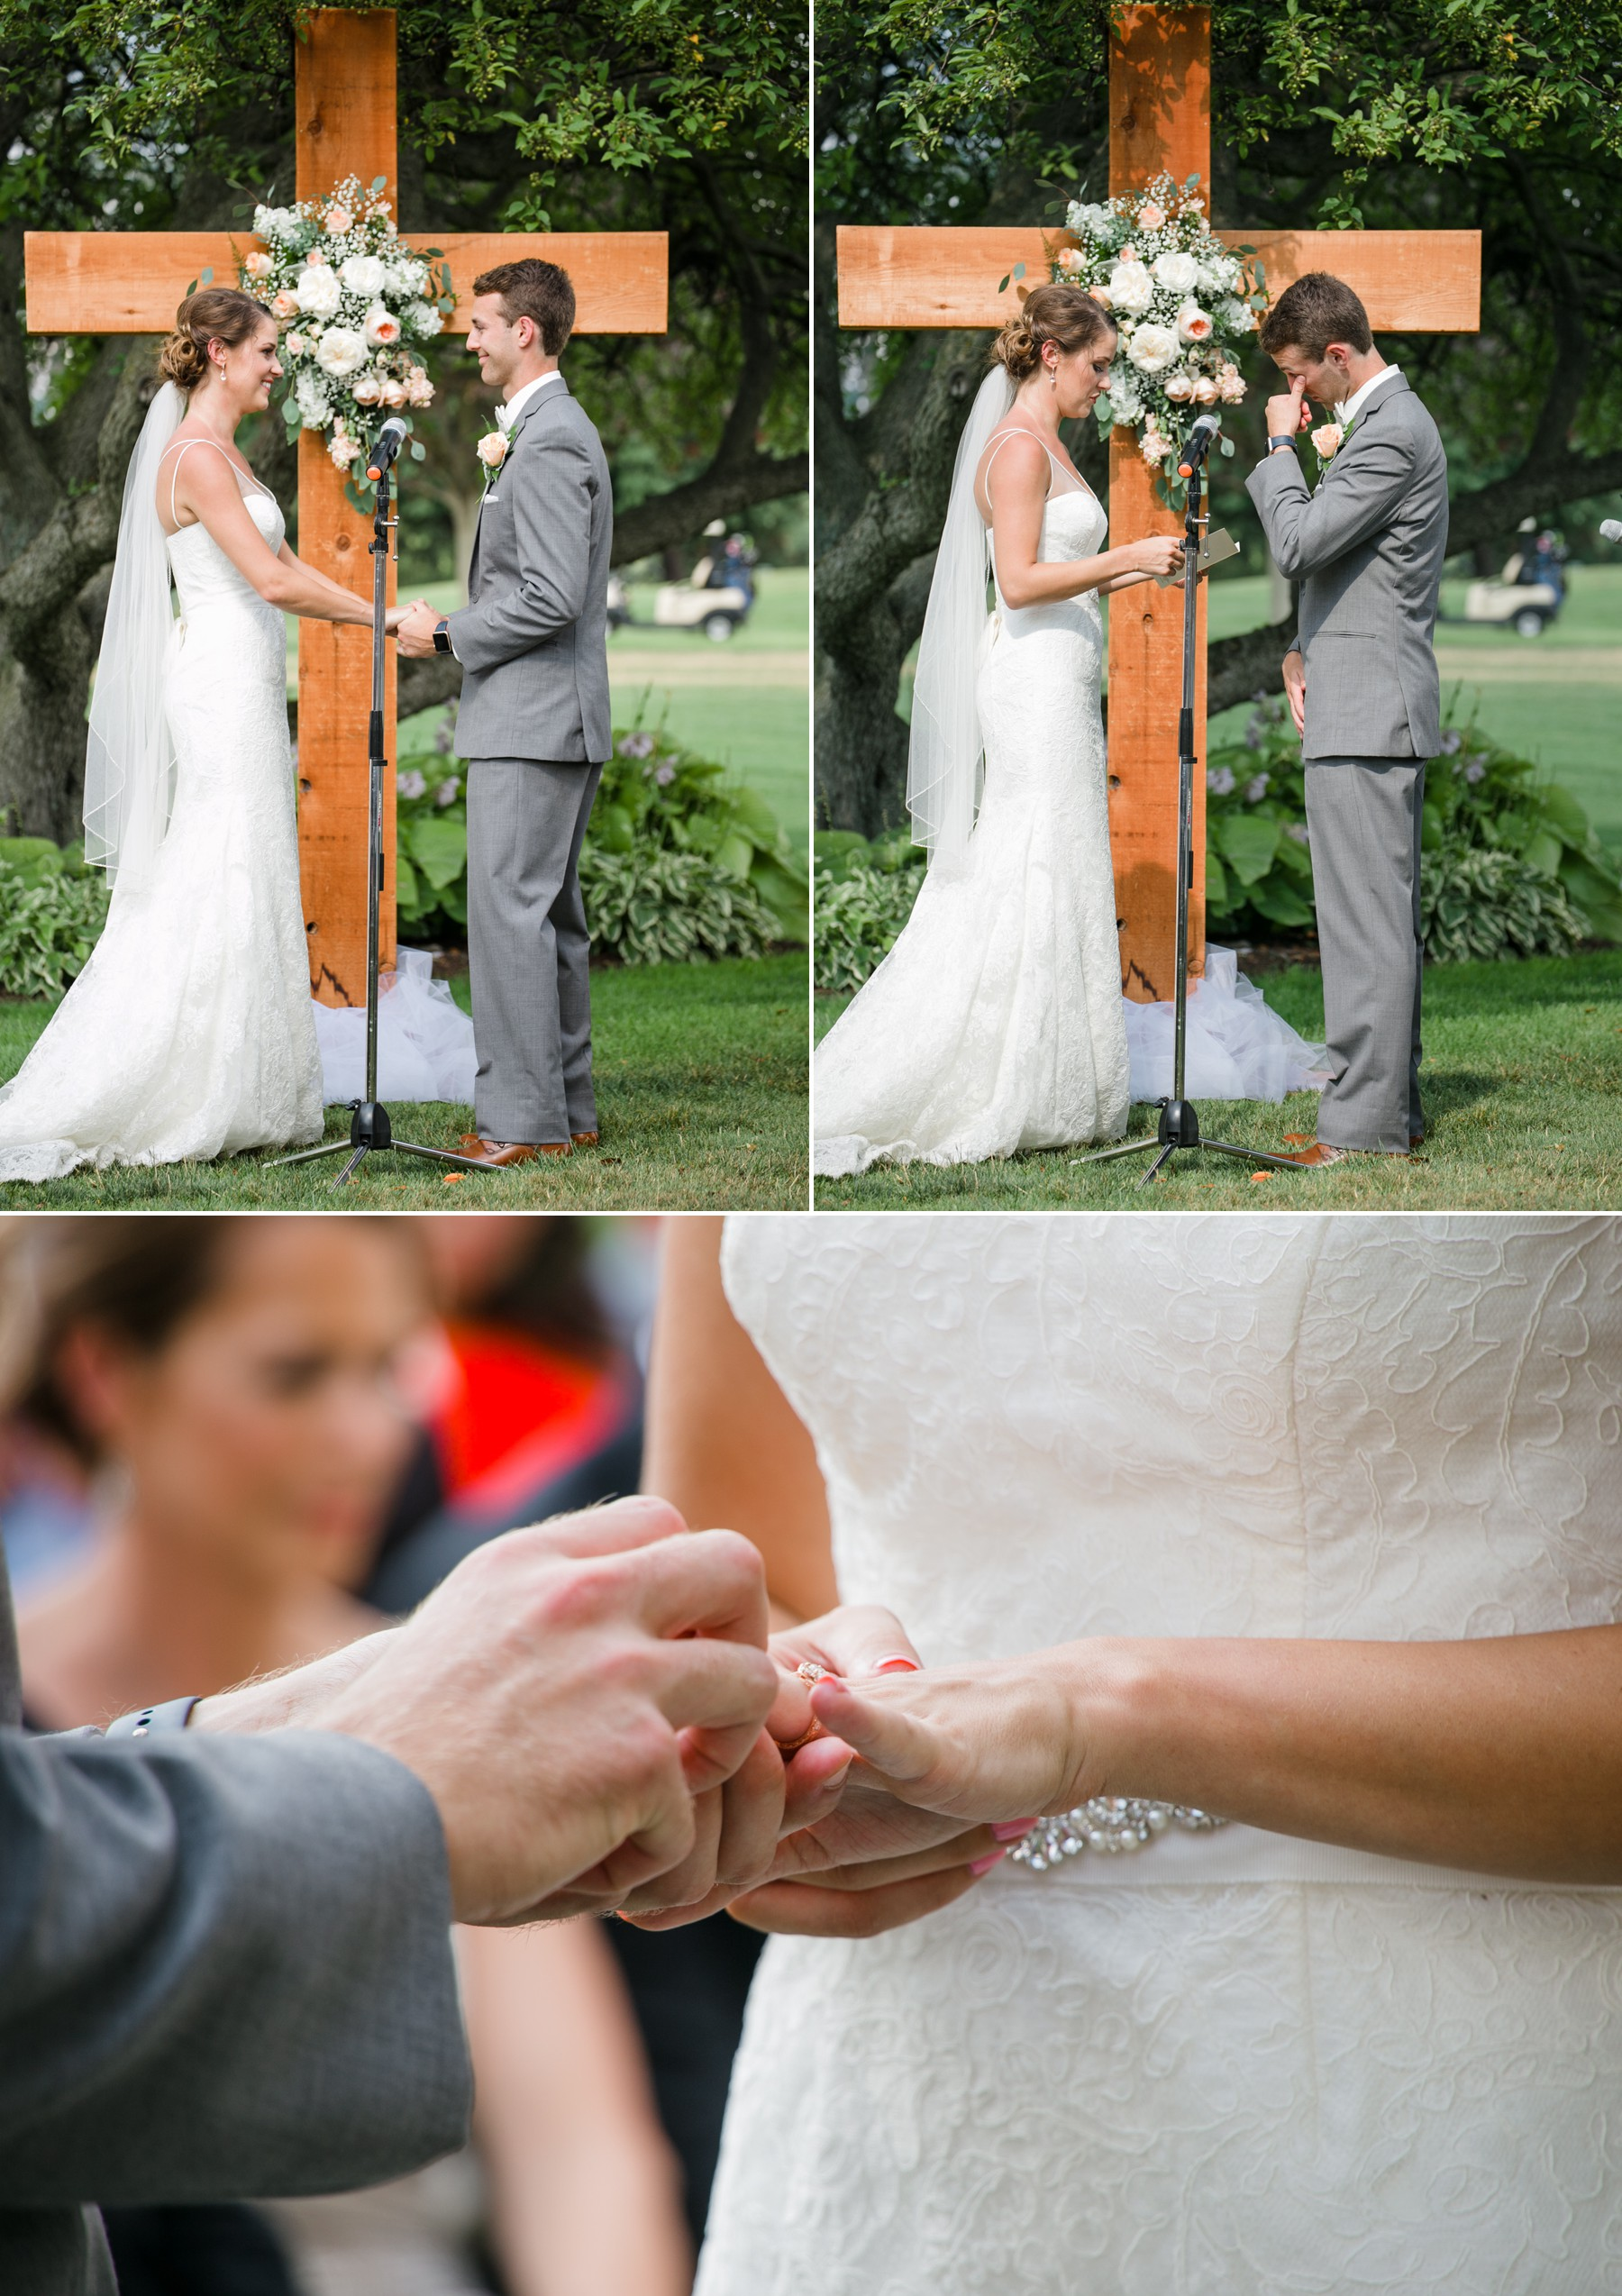 Highland-meadows-wedding-photos 14.jpg